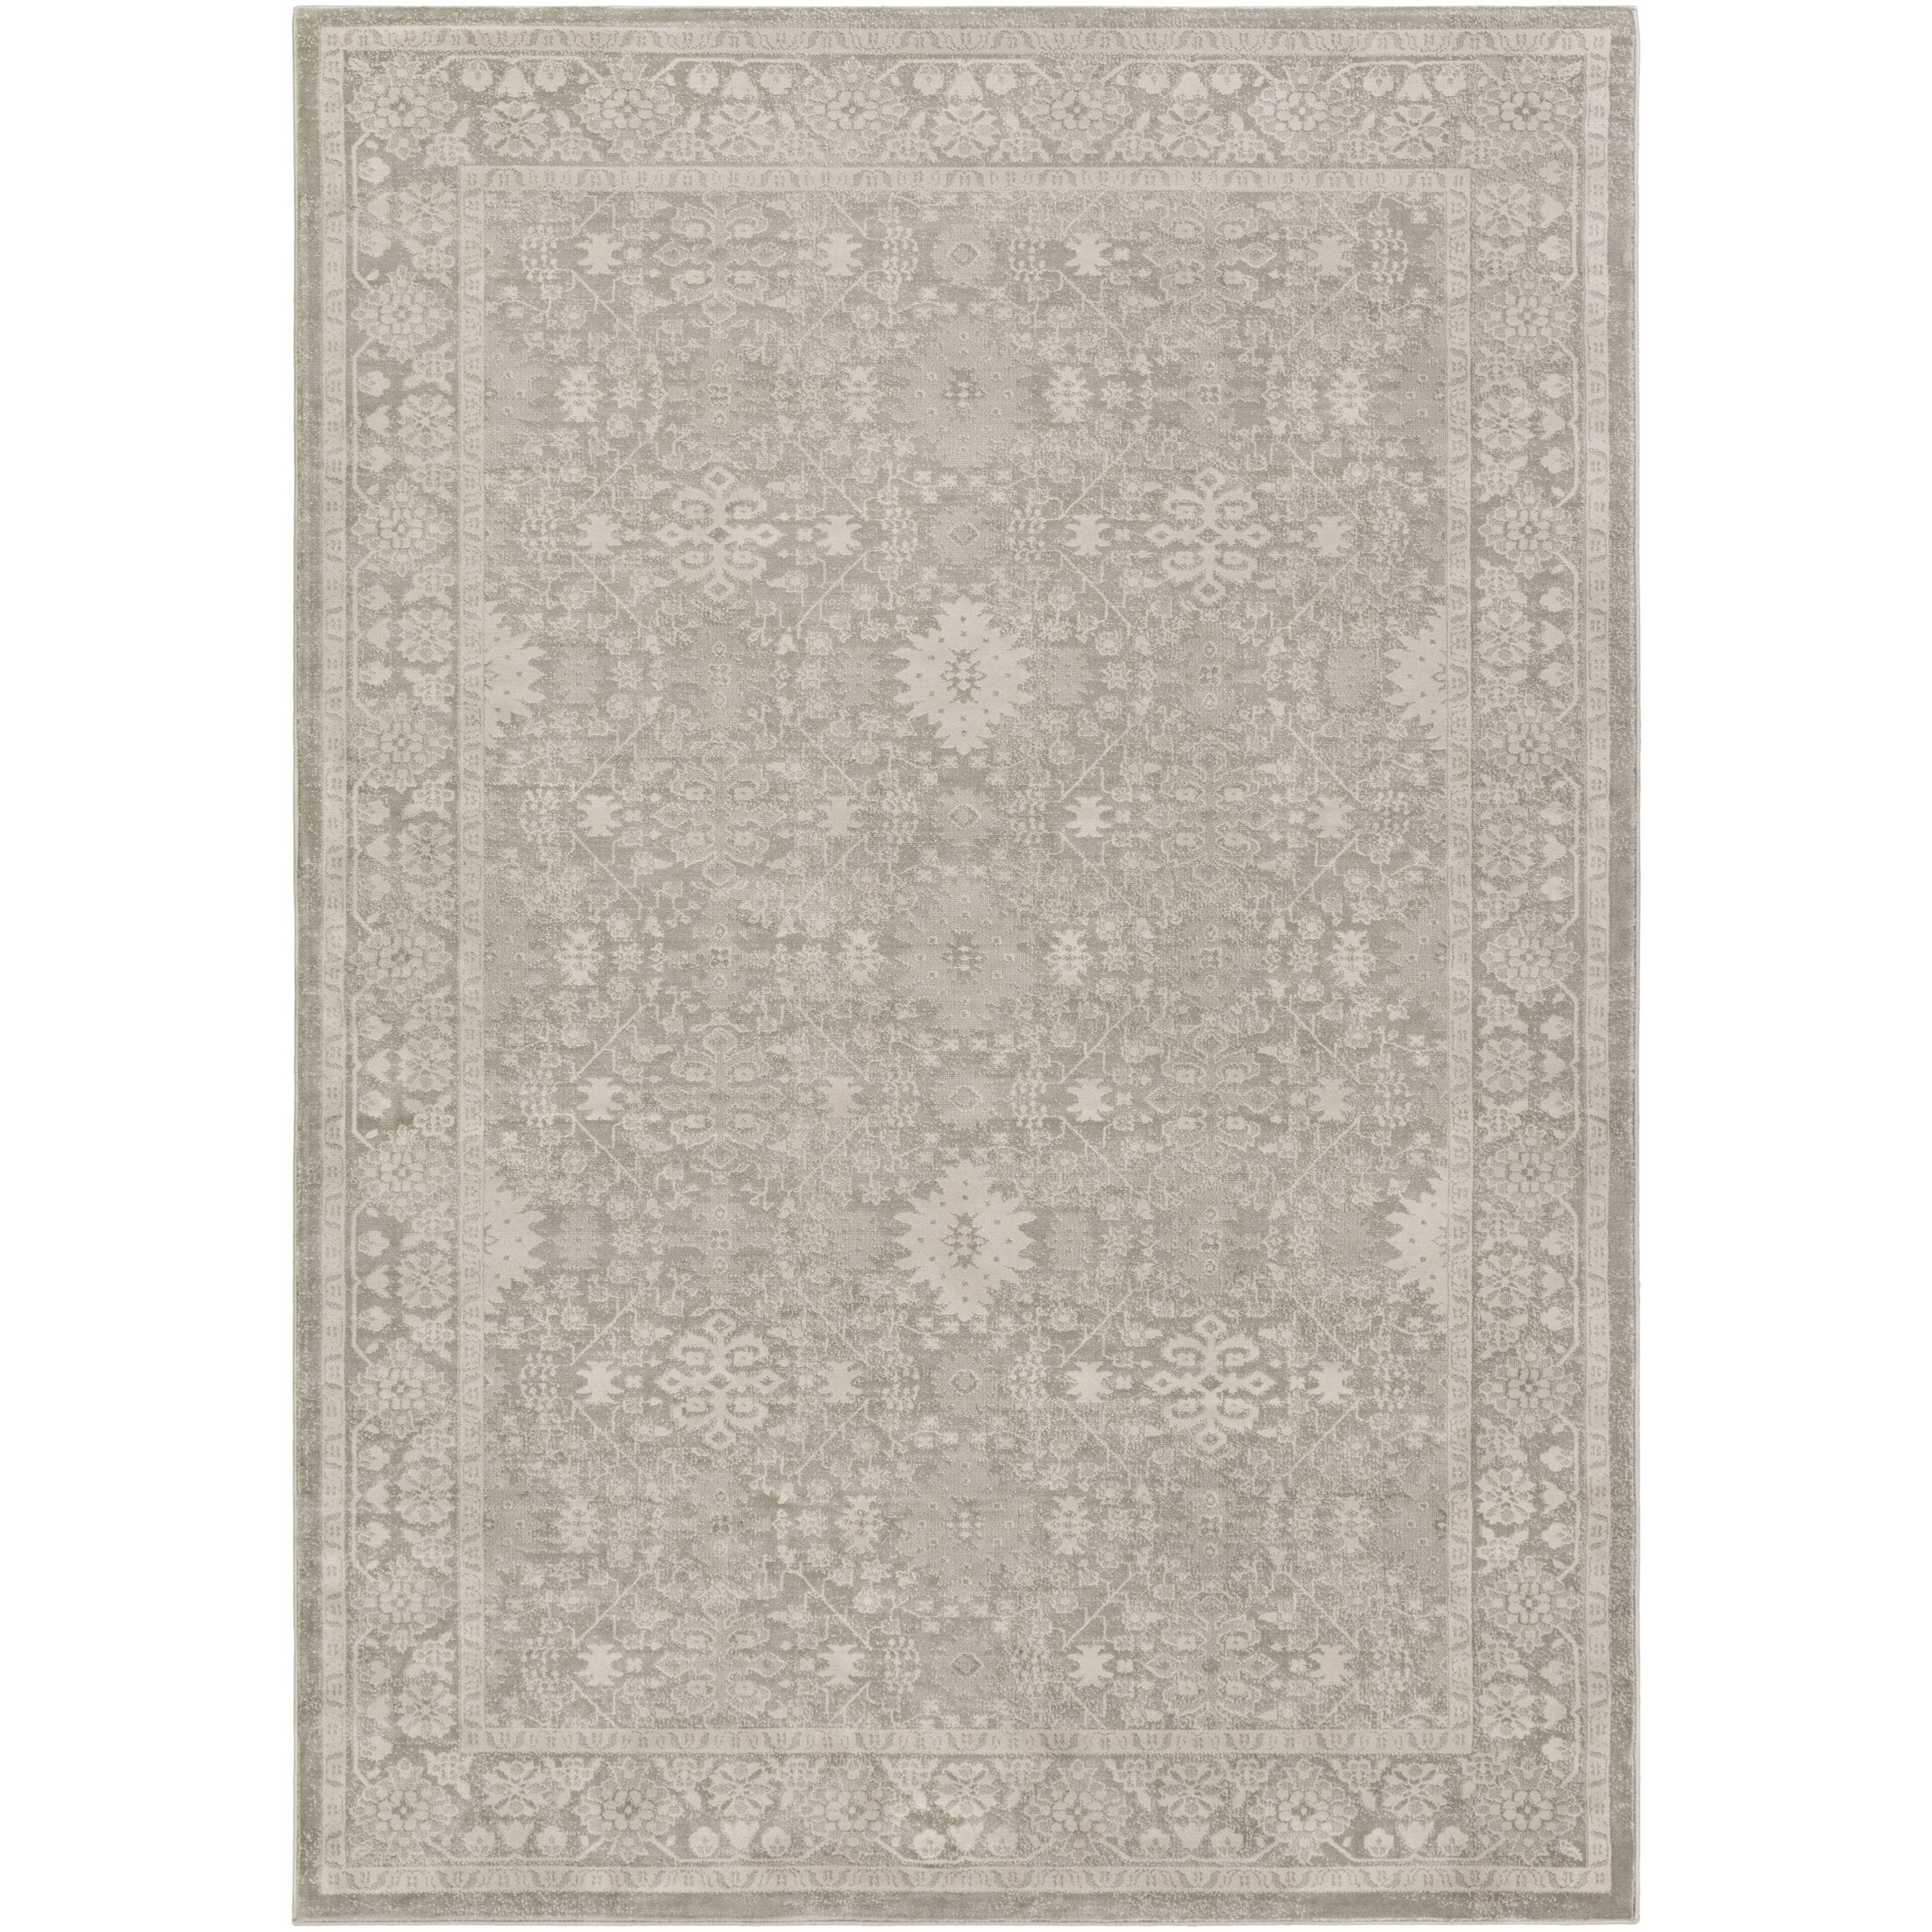 Riviere Gray/Ivory Area Rug Rug Size: Rectangle 2'2